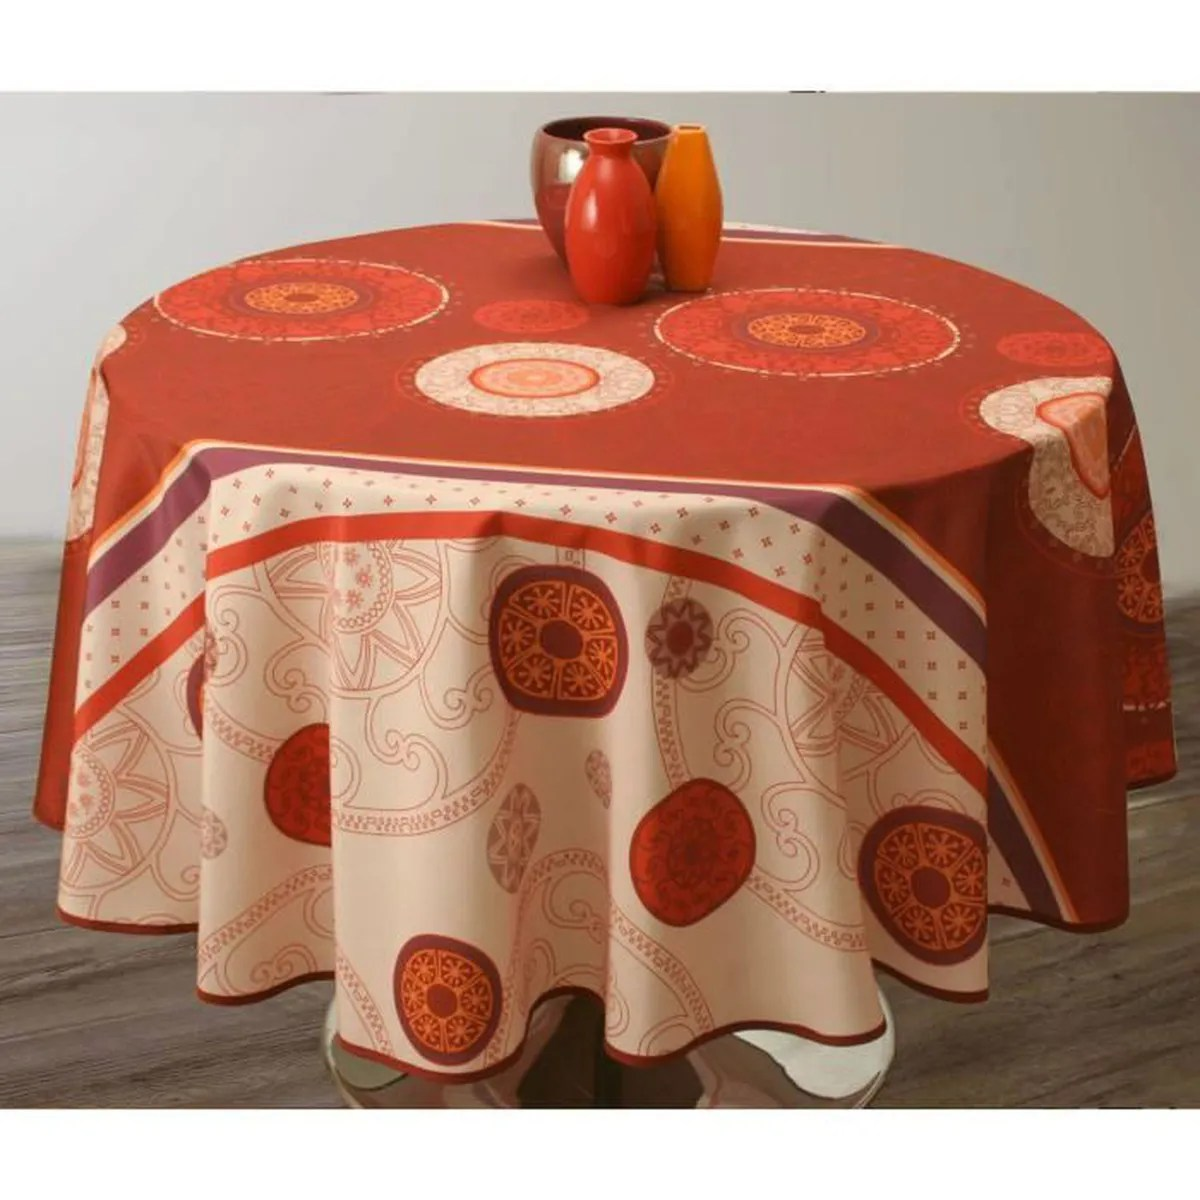 Nappe De Table Ovale Nappe De Table Ovale Tzigane 150x240cm Rouille Antitache